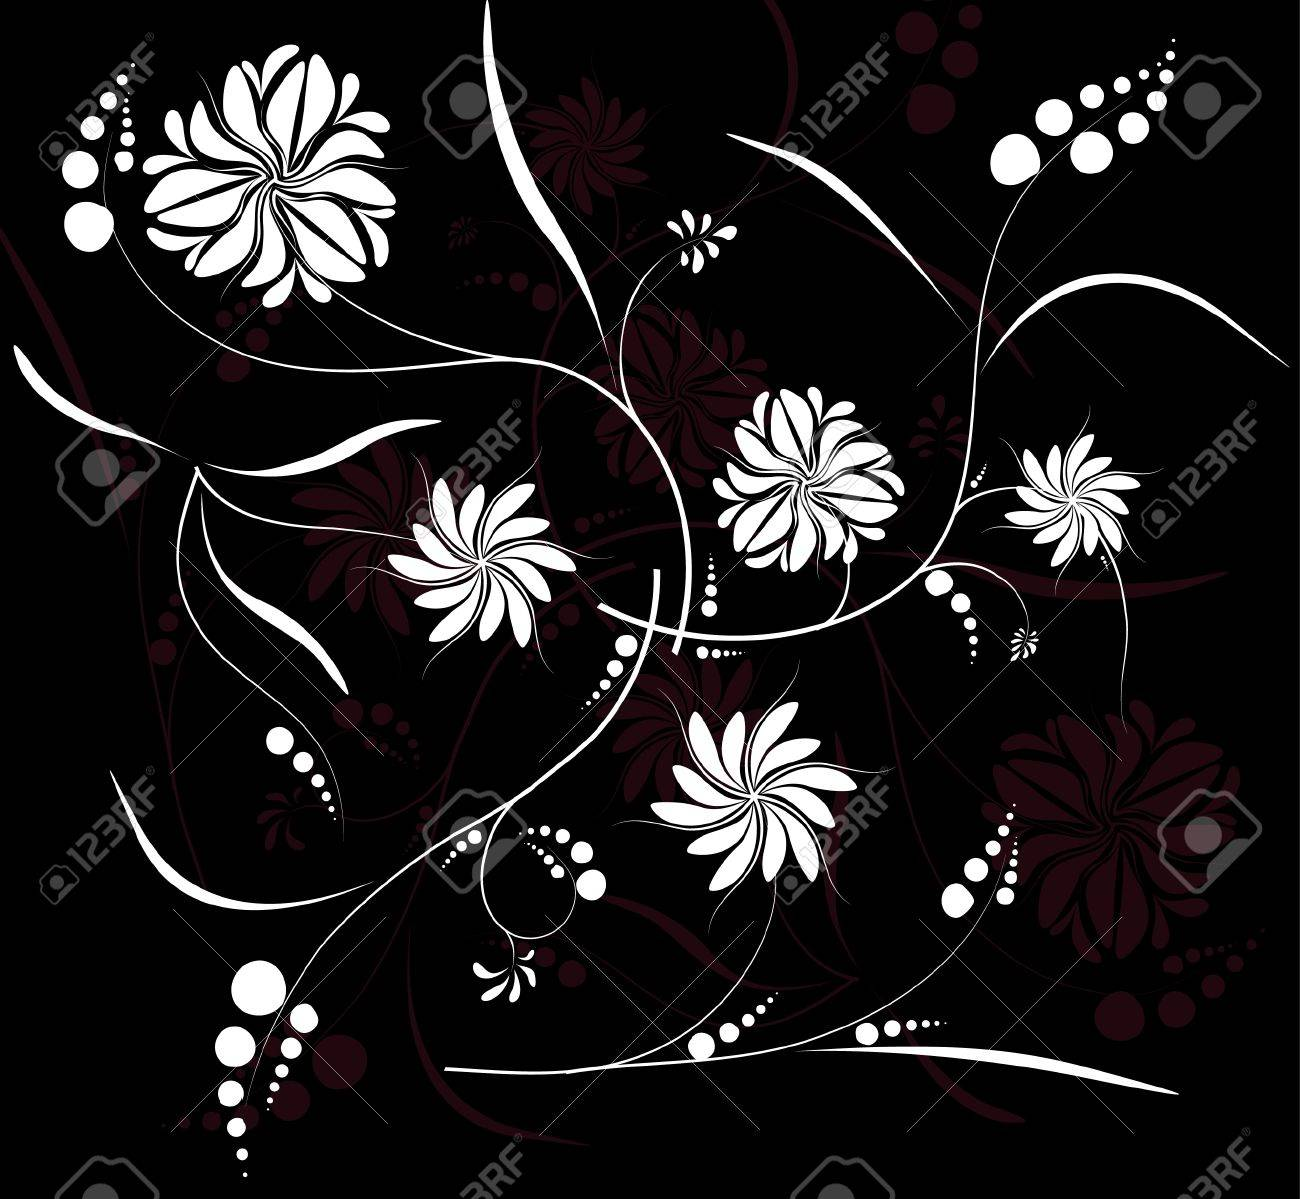 floral background at the black, white and dark red tones Stock Vector - 9093184